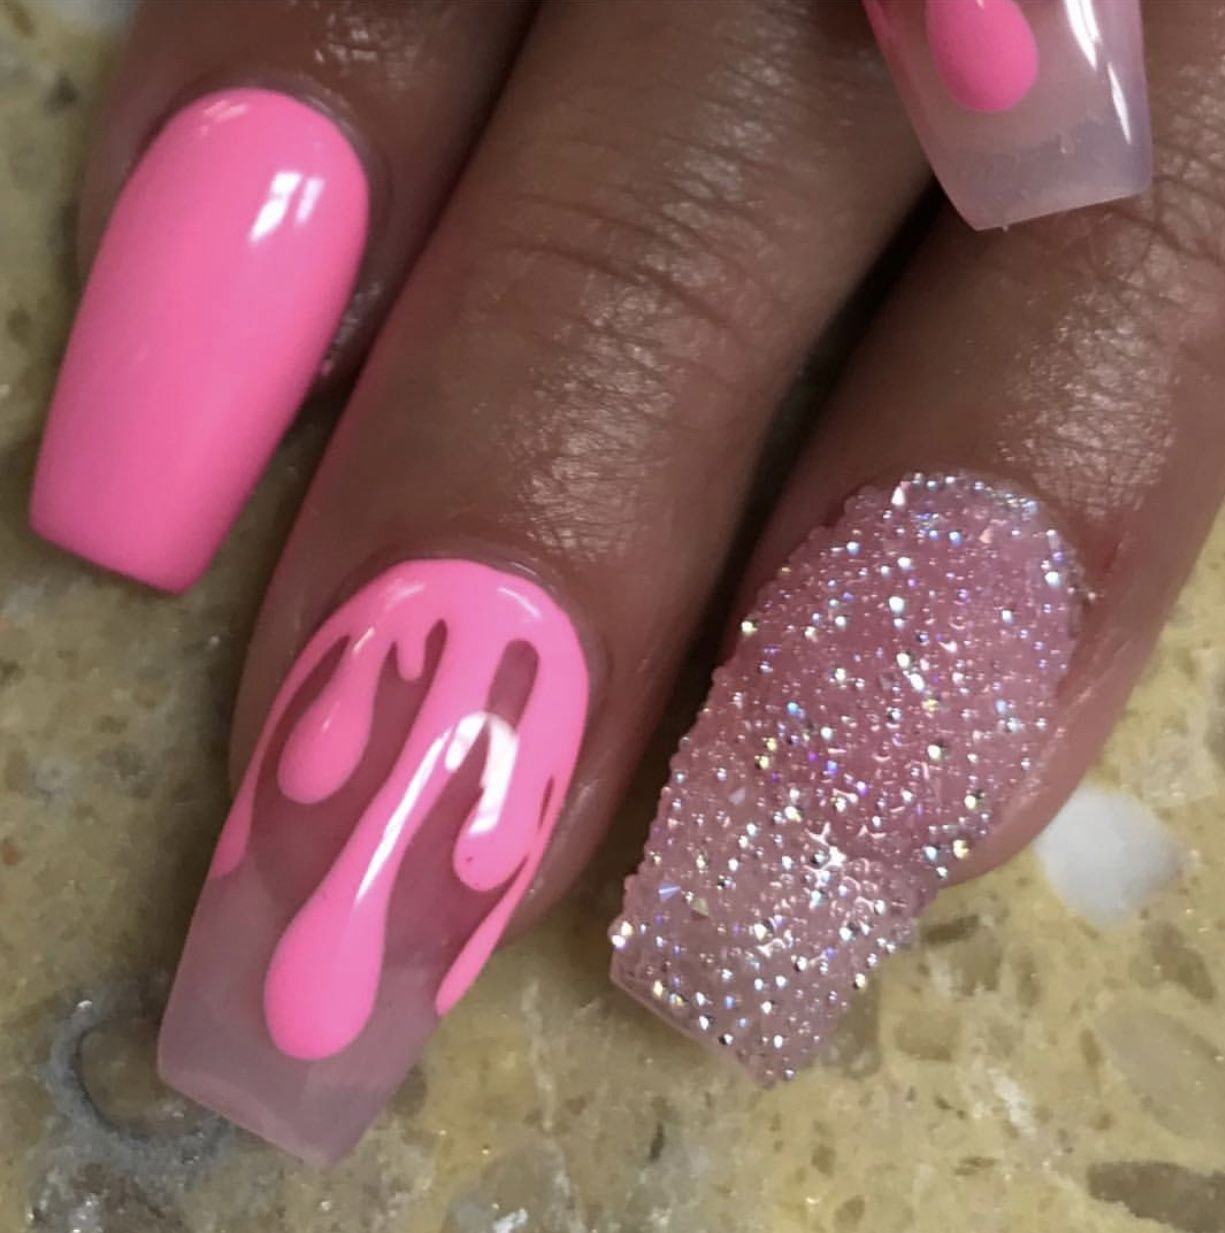 Pin By Pamela Burroughs On Acrylic Nail Designs In 2018 Pinterest